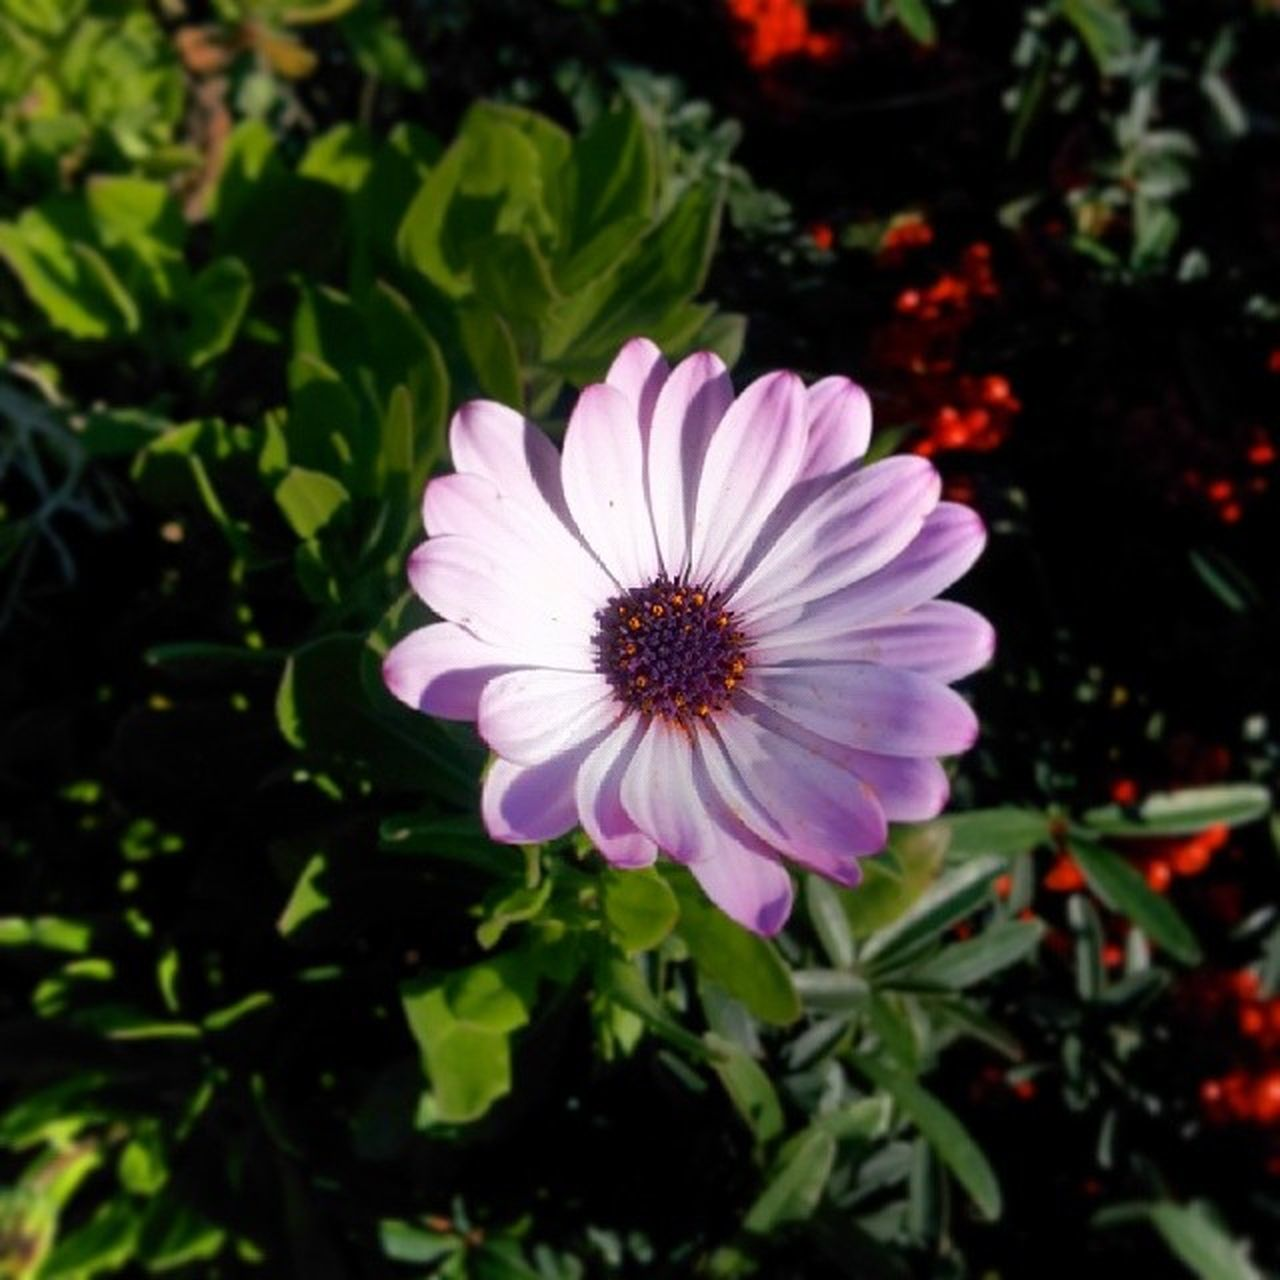 flower, petal, growth, nature, flower head, fragility, beauty in nature, blooming, plant, freshness, no people, outdoors, day, osteospermum, close-up